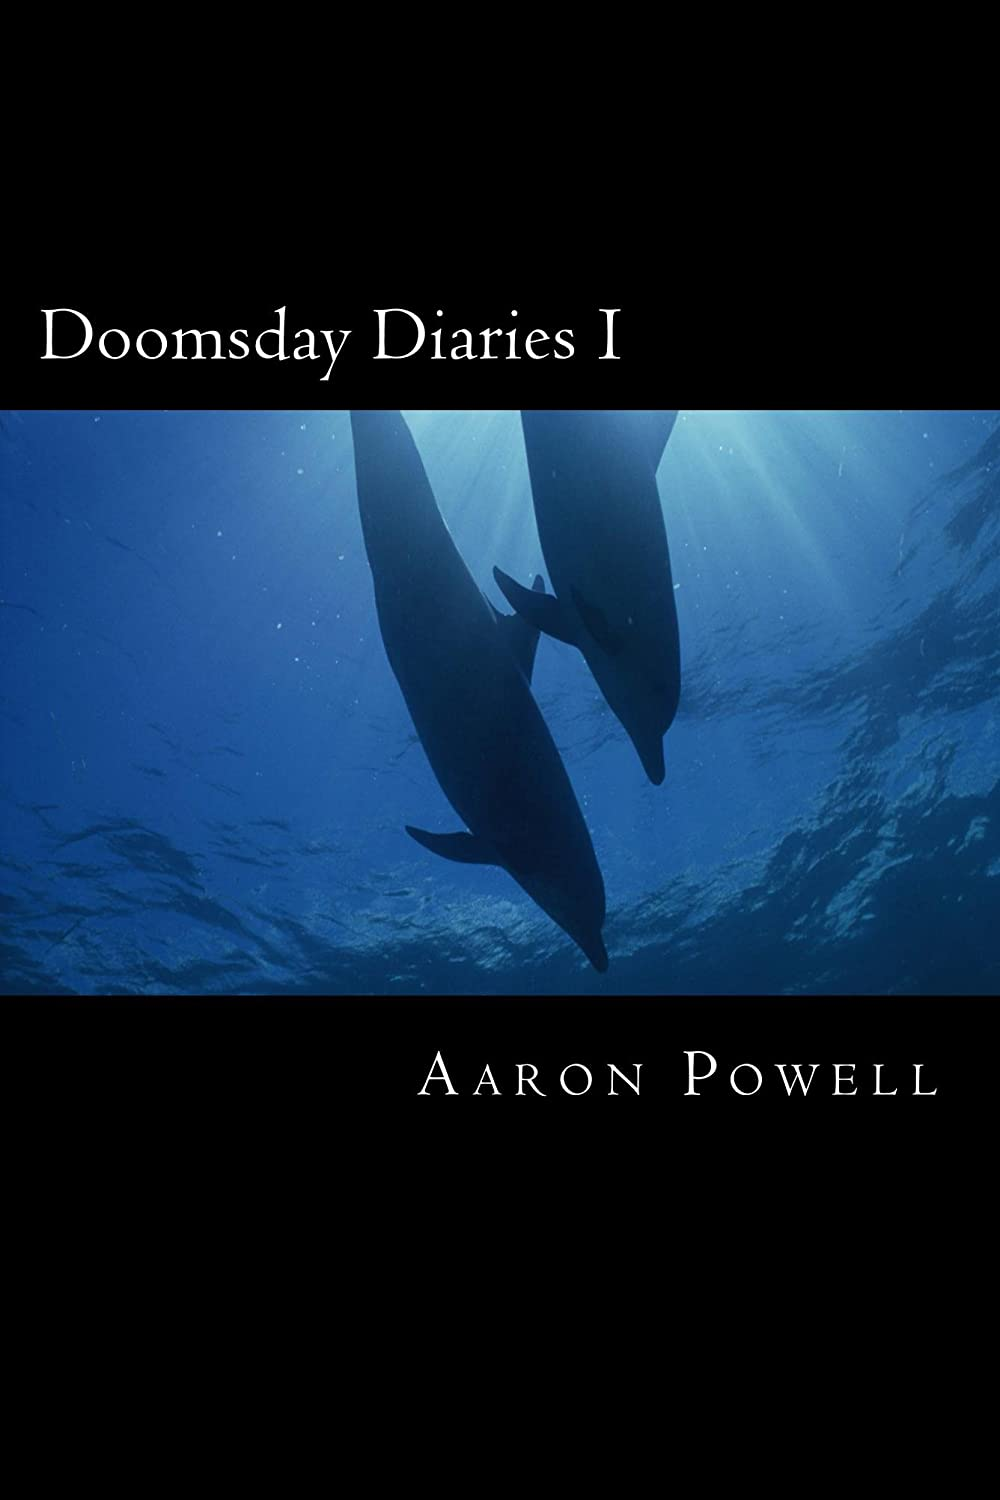 Doomsday Diaries I - Aaron Powell